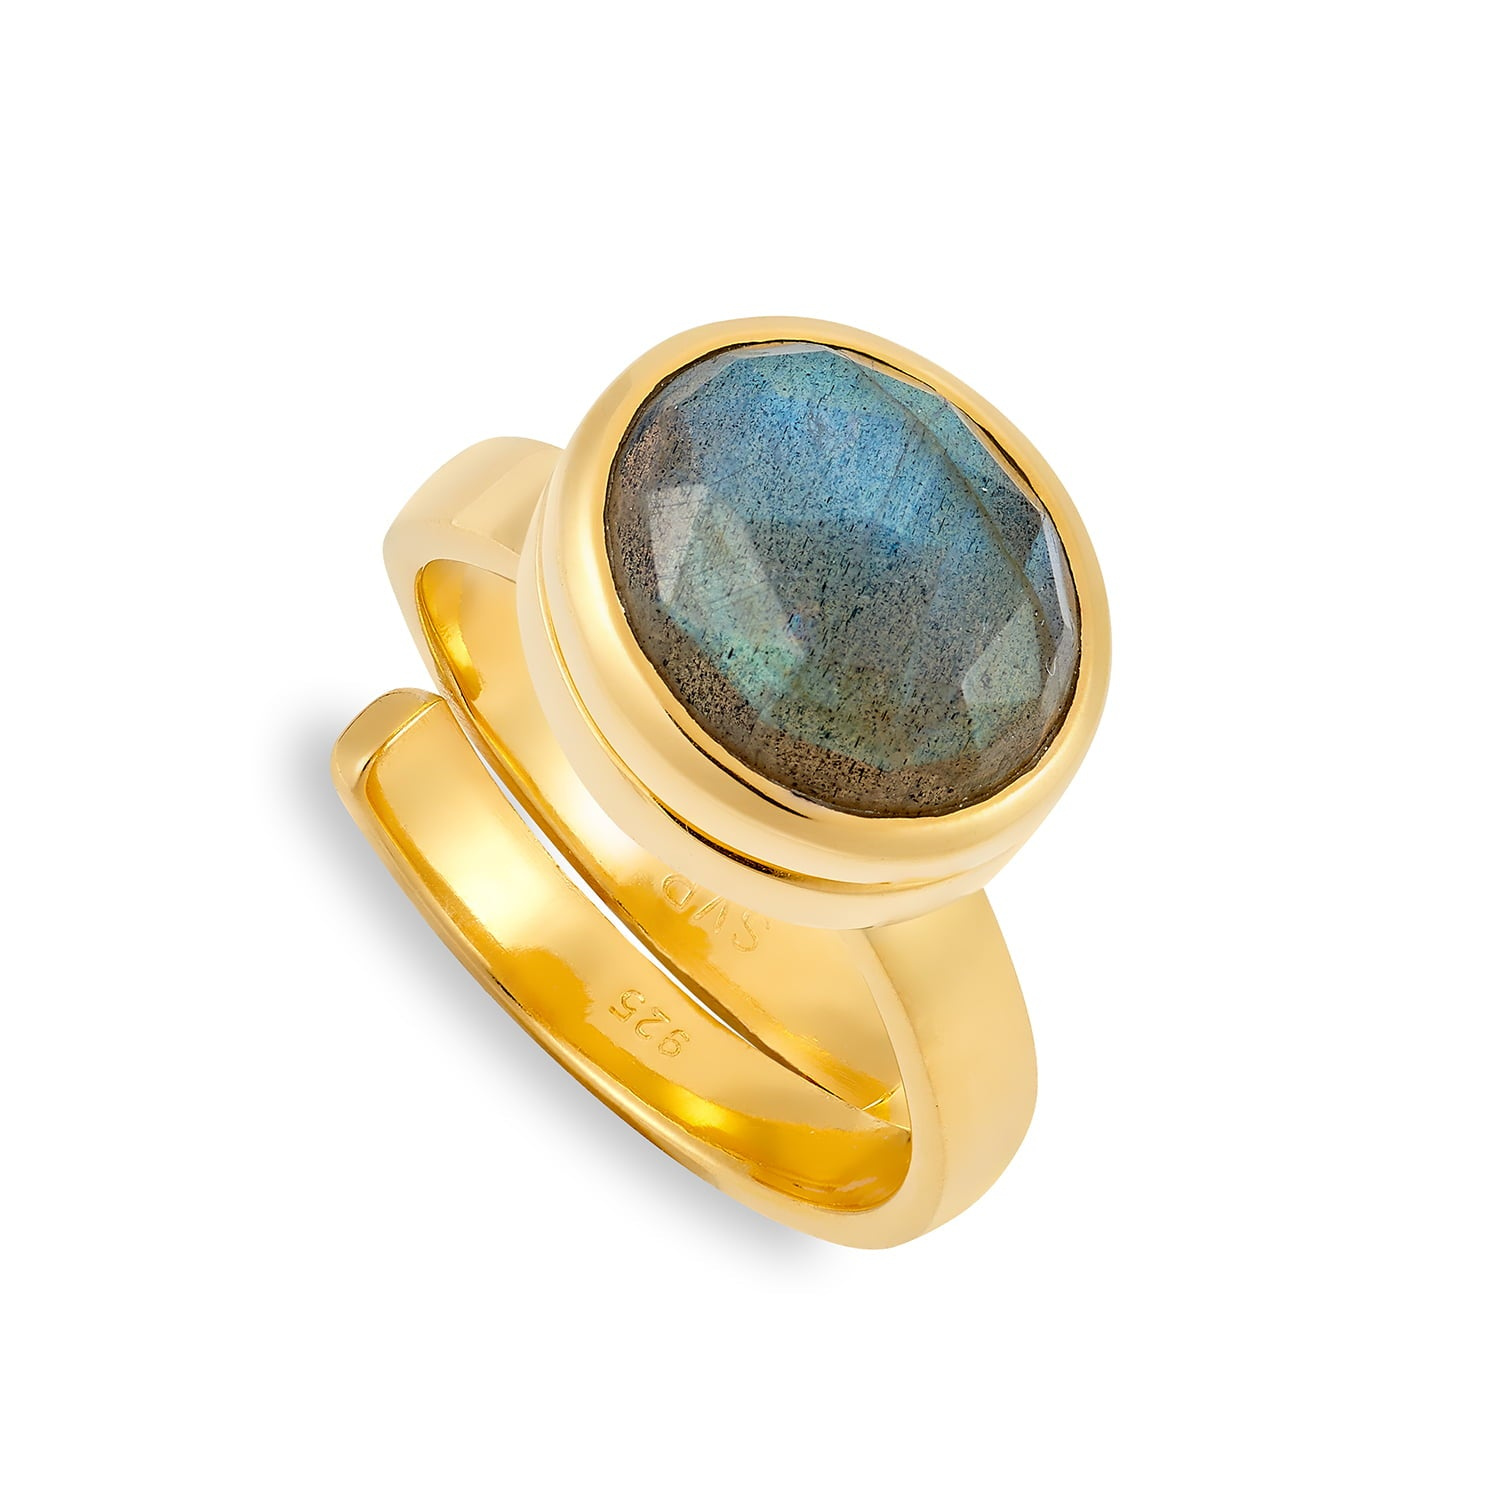 LLR02LAYV-Lucky-Locket-Labradorite-Gold-Vermeil-Closed-SVP-Adjustable-Ring